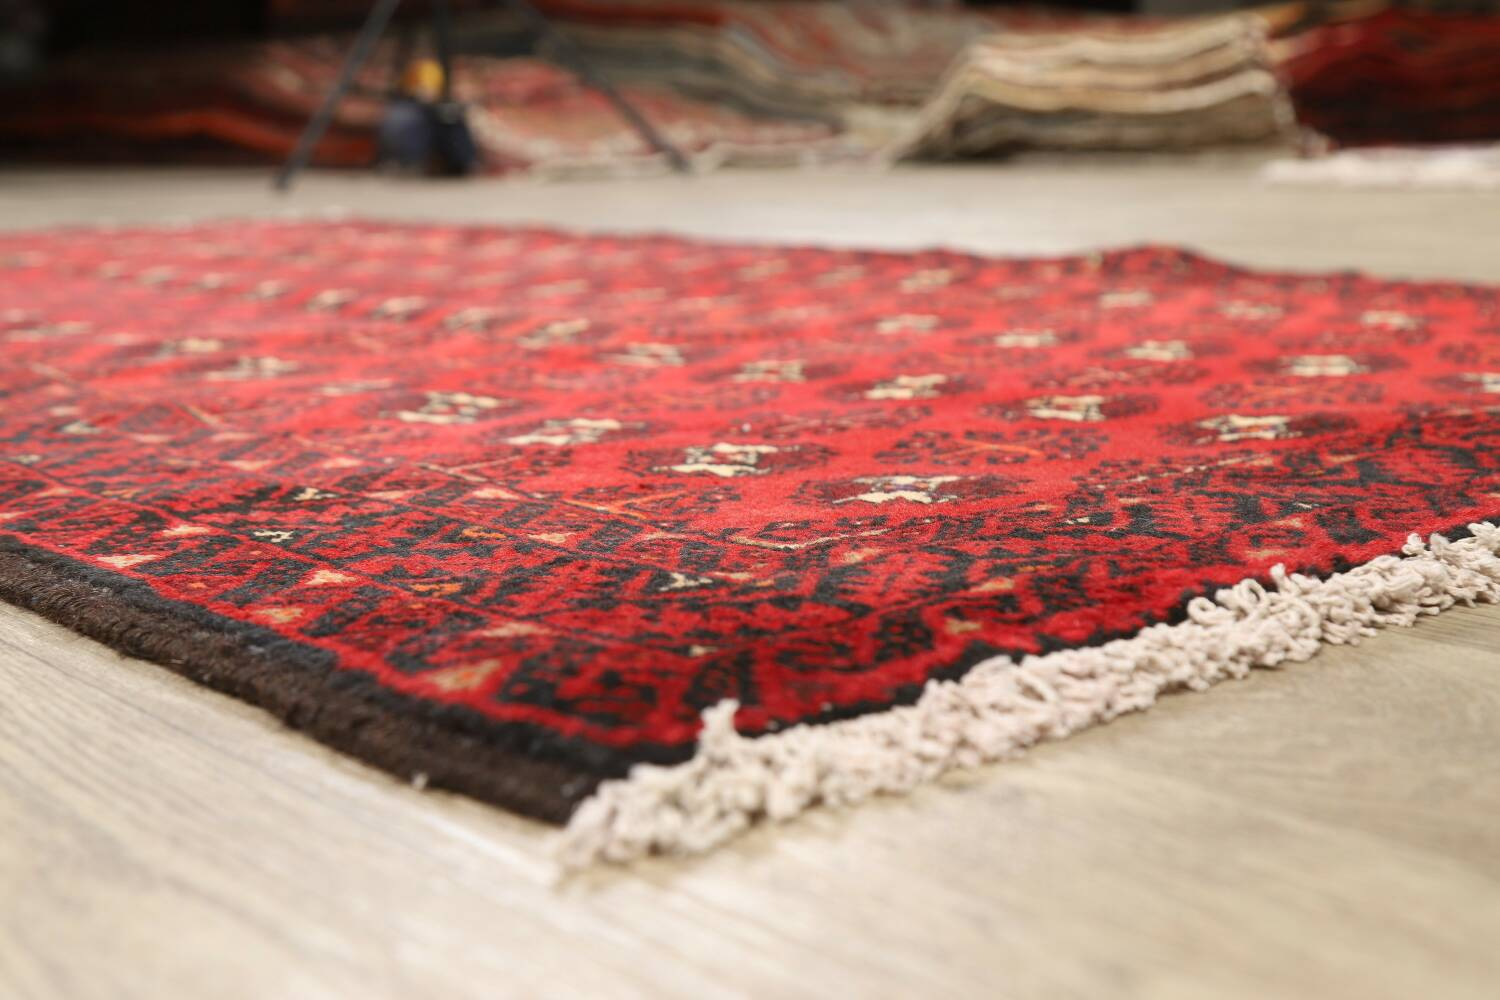 All-Over Red Geometric Balouch Persian Area Rug 4x7 image 21